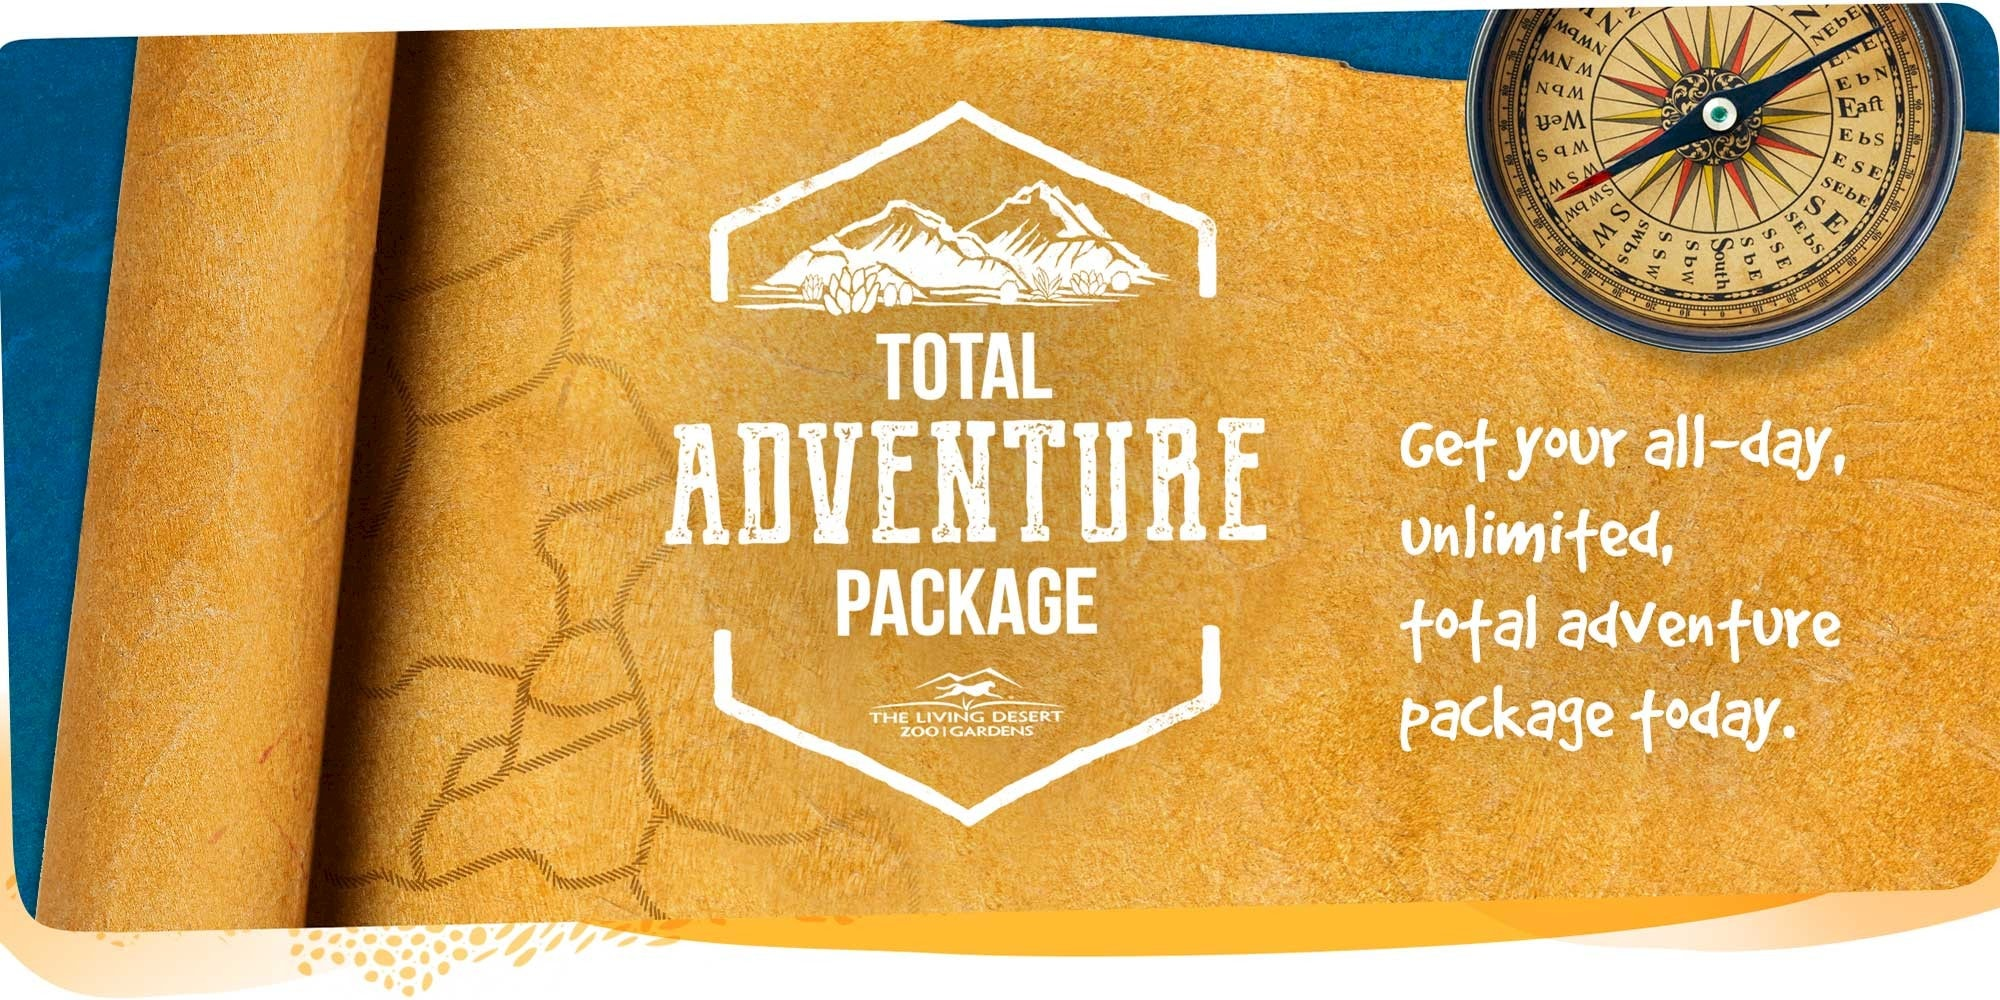 Total Adventure Package. Get your all-day, unlimited, total adventure package today. Click for more information.